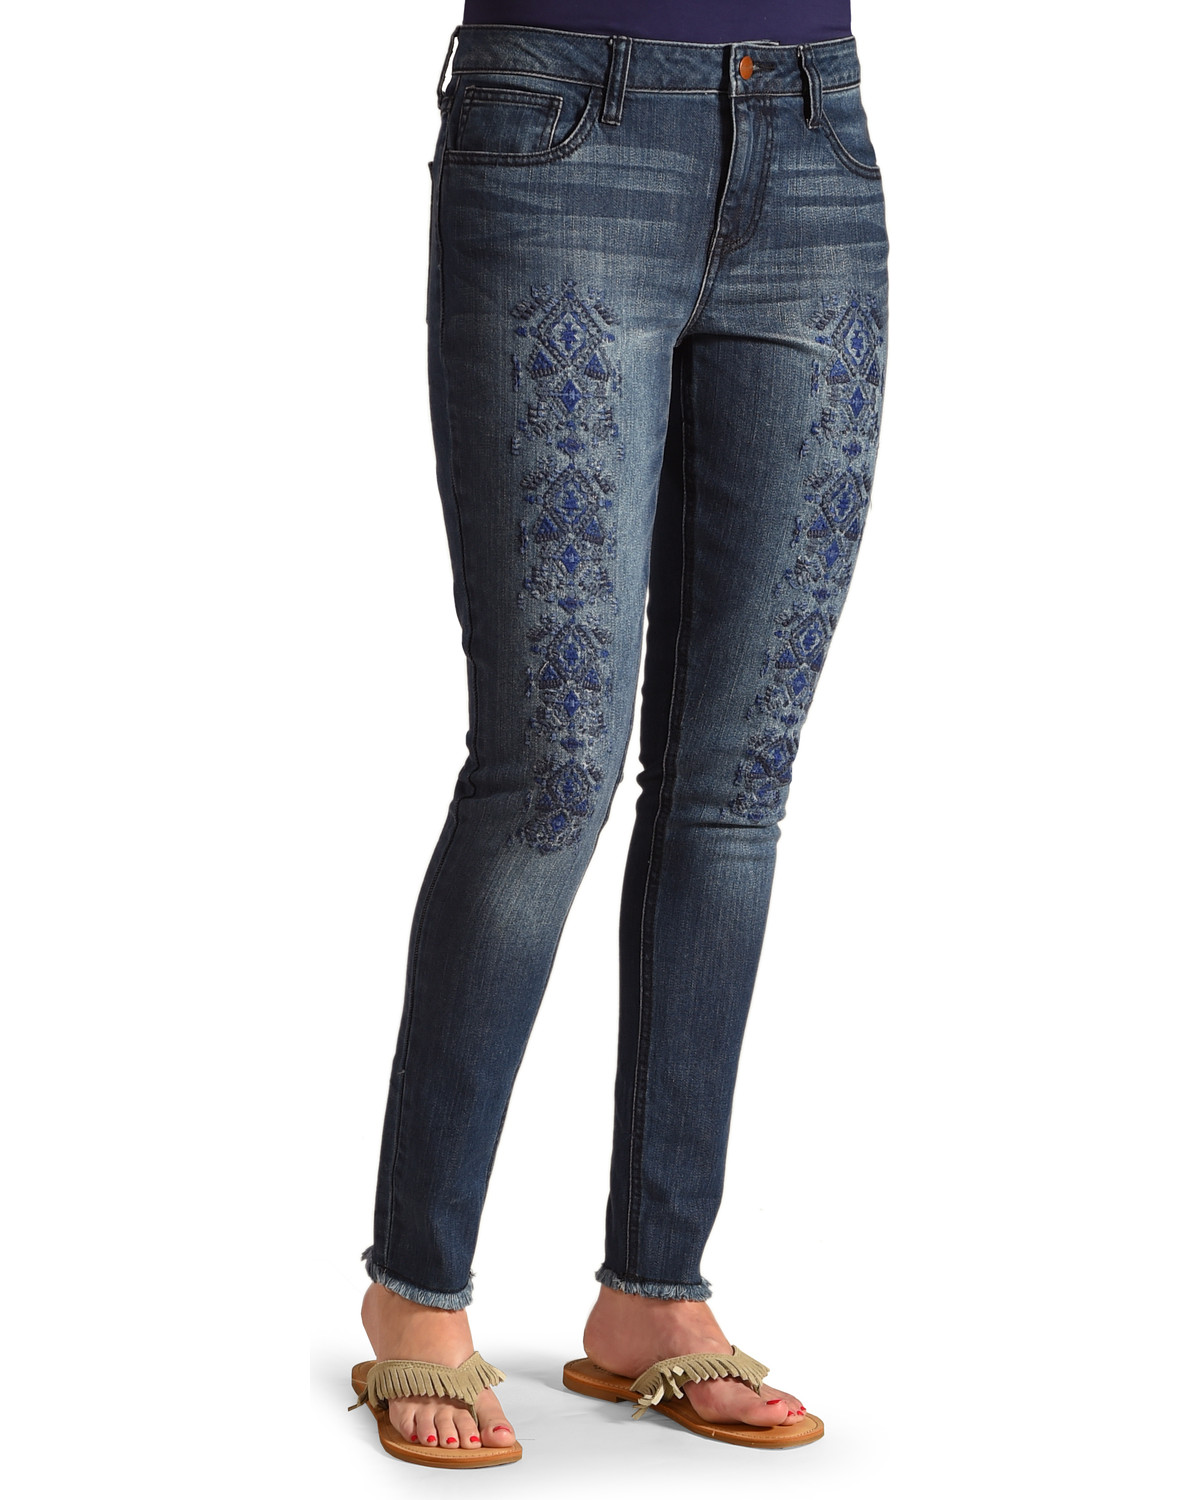 a5241396 Zoomed Image Wrangler Women's Embroidered Tribal Print Skinny Jeans ,  Indigo, hi-res. Zoomed Image ...